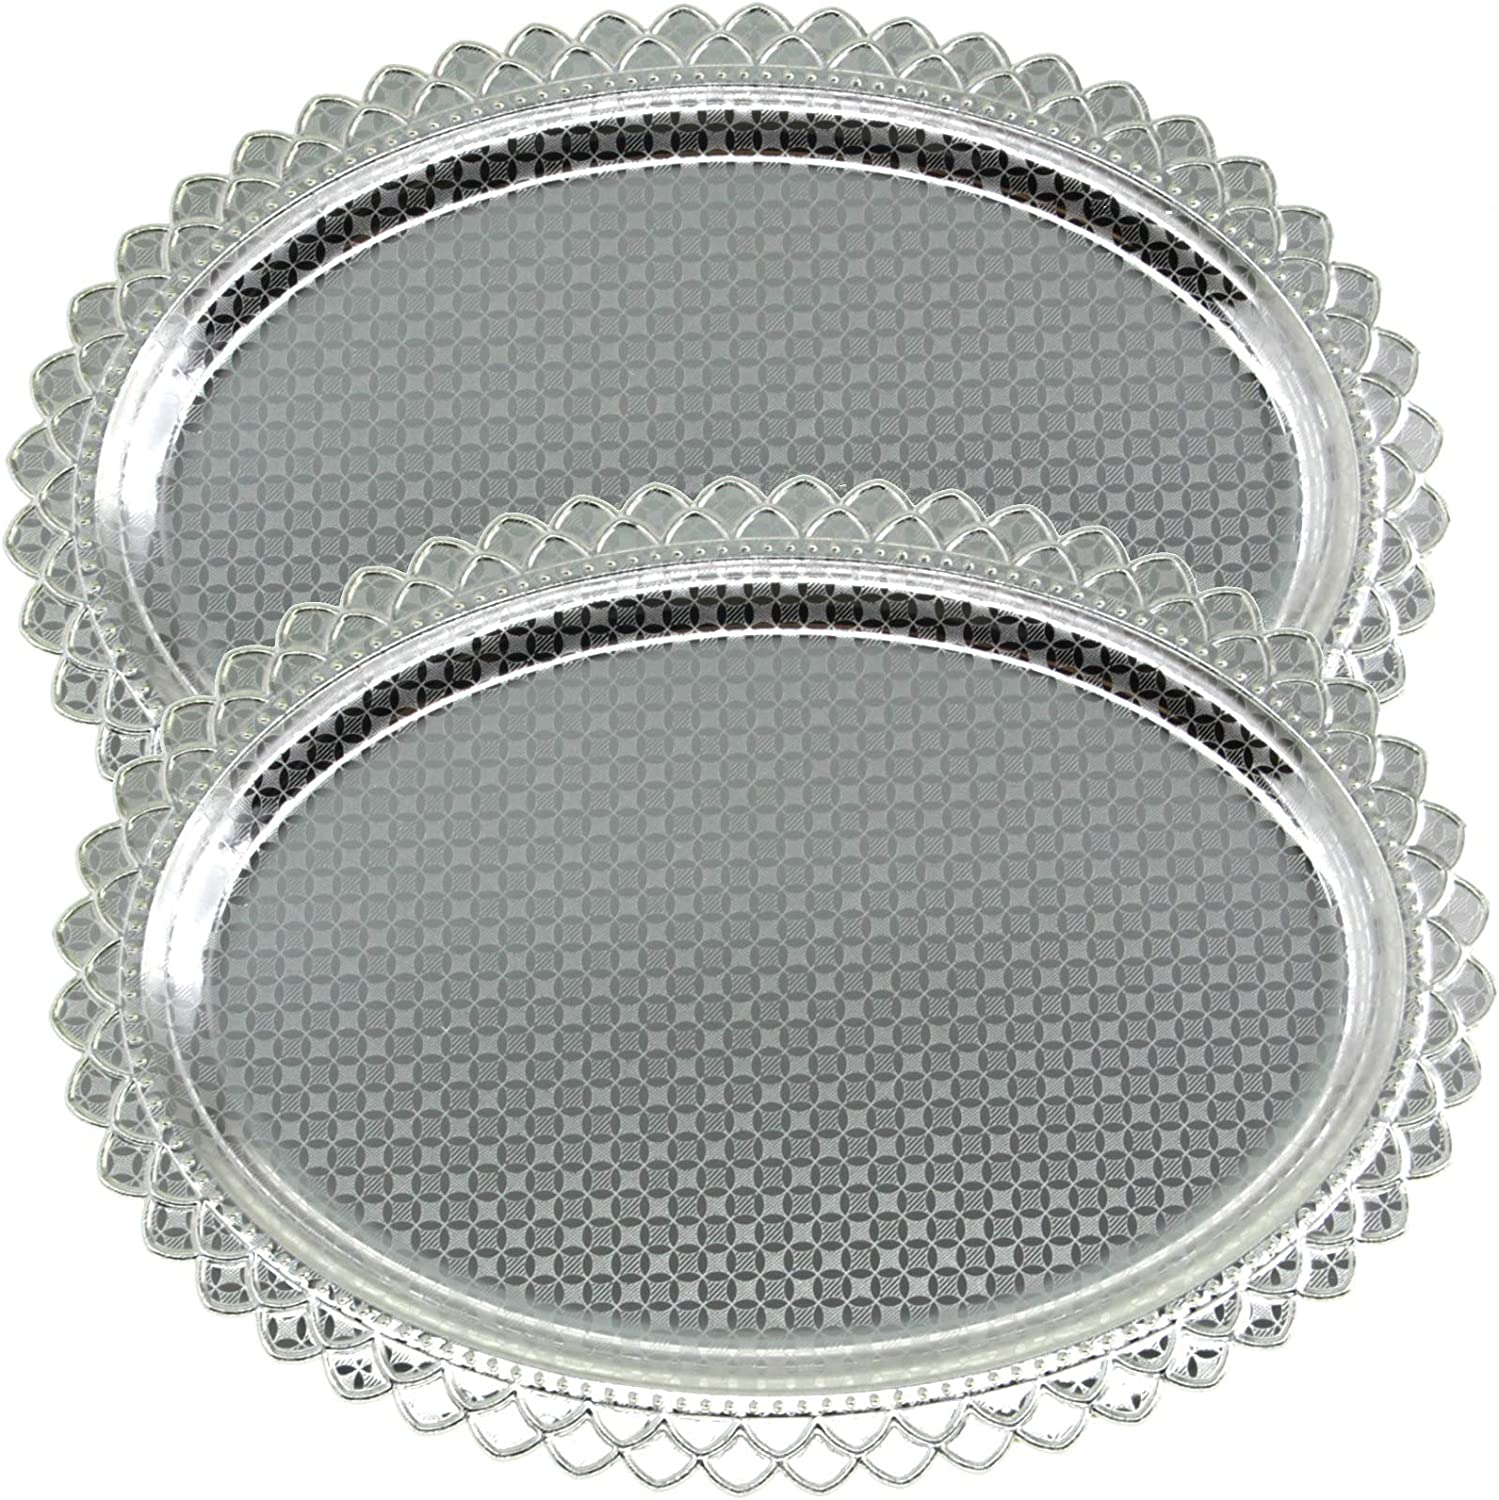 Maro Megastore (Pack of 2 15 Inch x 11 Inch Oblong Chrome Plated Serving Tray Stylish Design Floral Engraved Edge Decorative Party Birthday Wedding Dessert Buffet Wine Platter Plate Dish CC-712